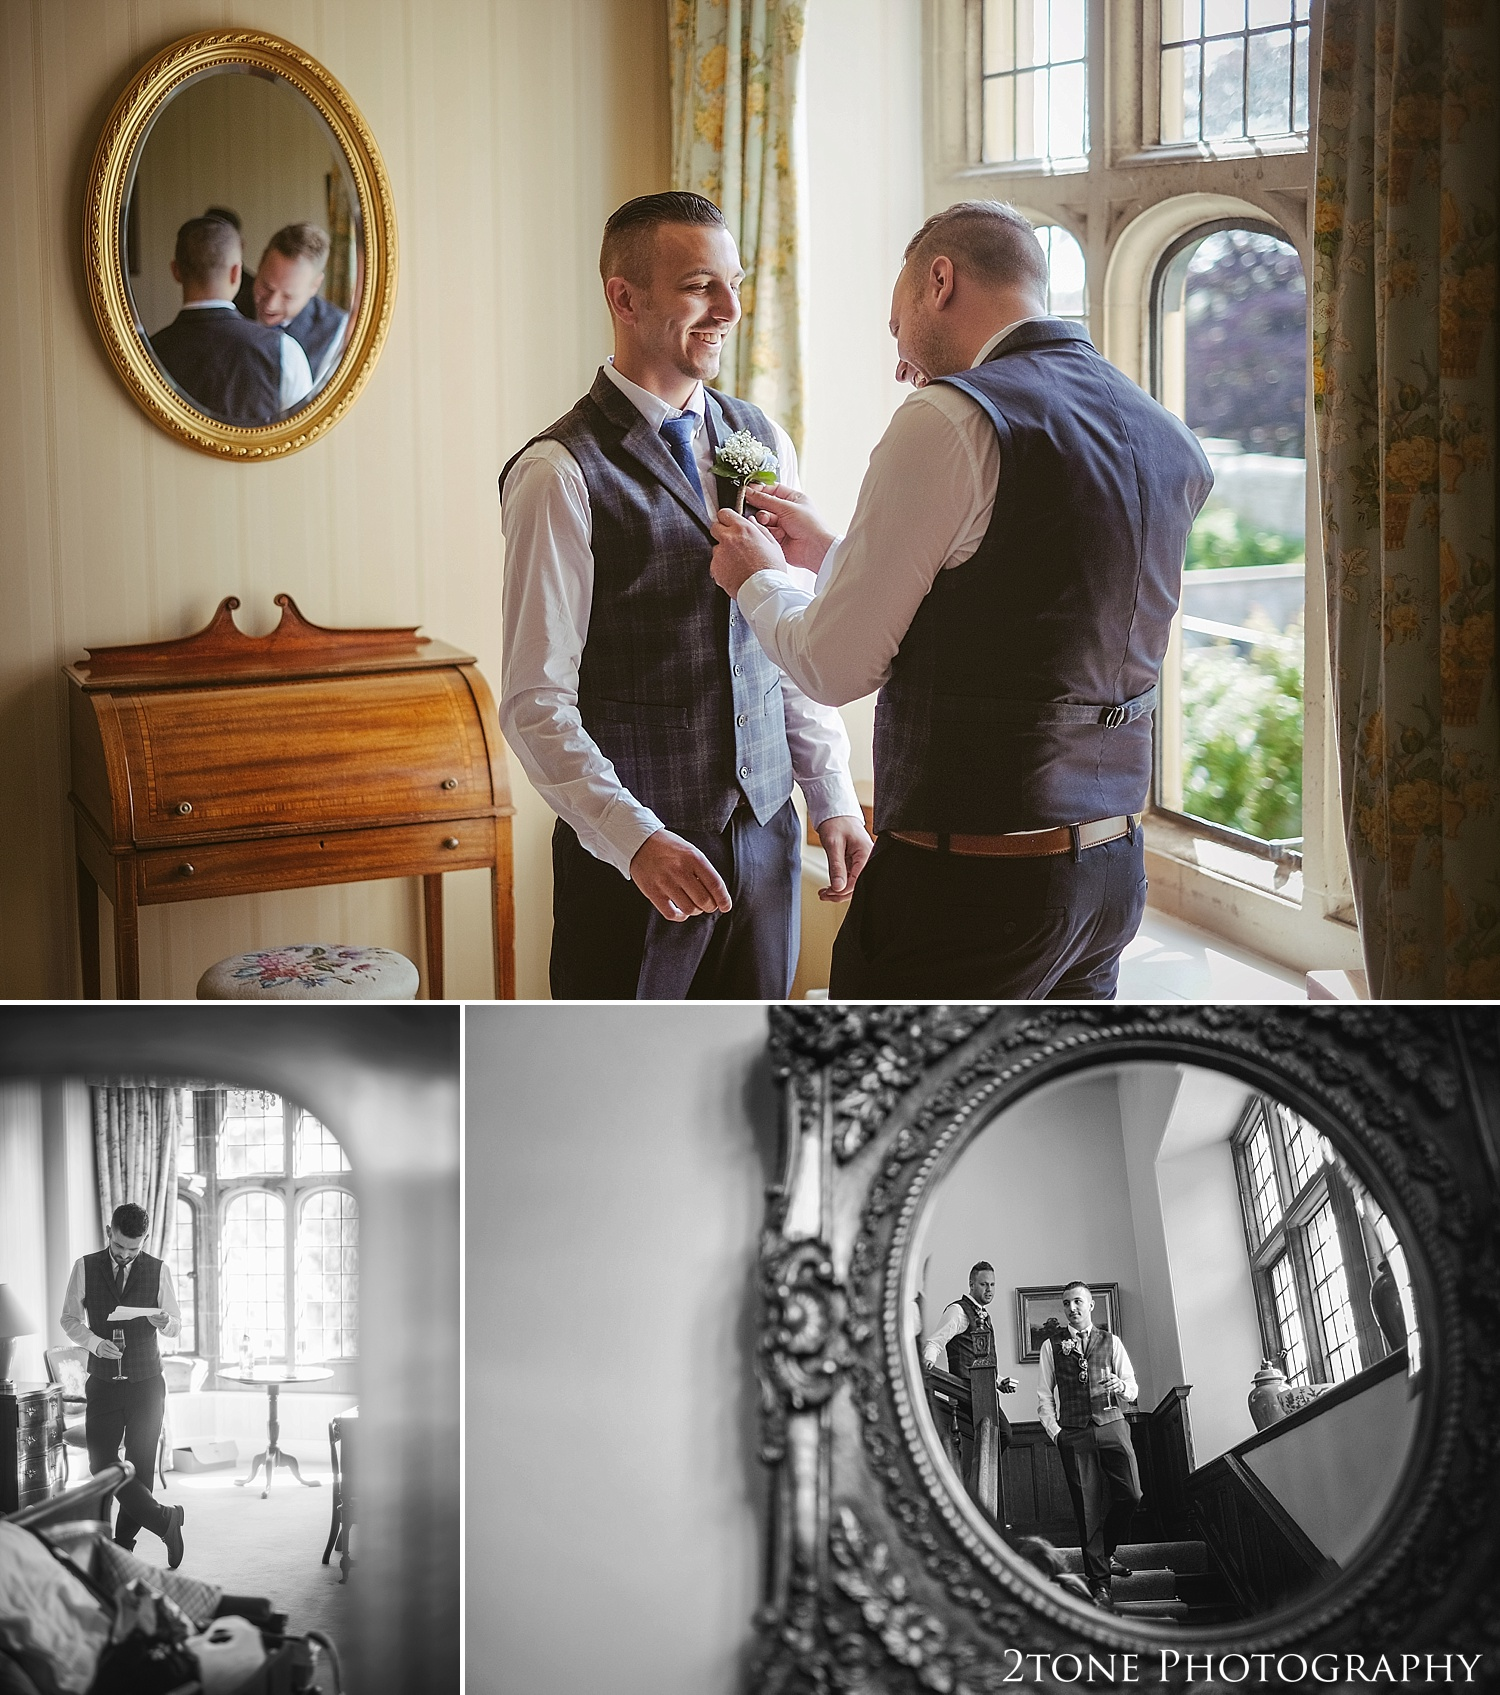 Groom getting ready.  Wedding photography at Guyzance Hall by wedding photographers www.2tonephotography.co.uk